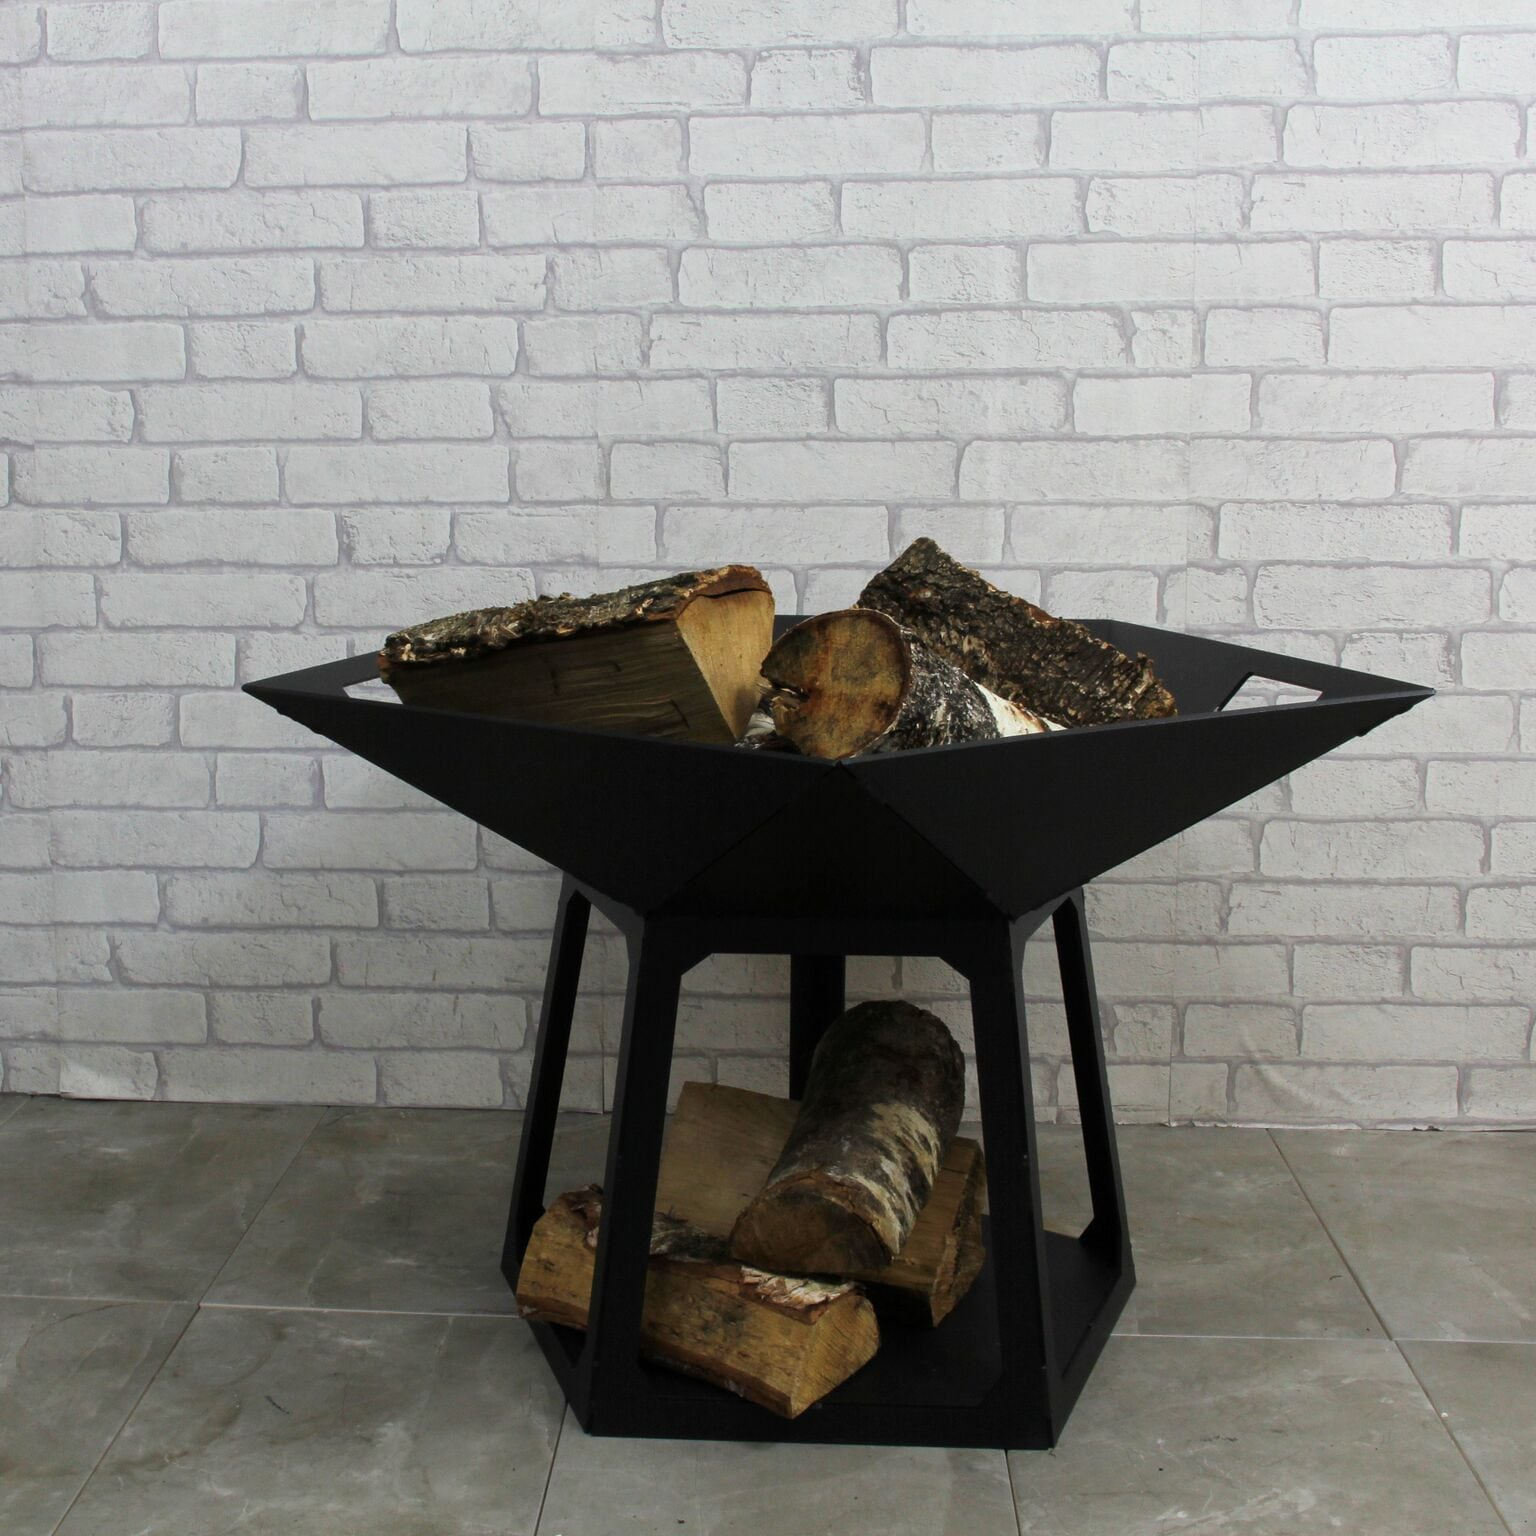 firepit star black logs internal Top Result 50 Awesome Metal Fire Pits for Sale Photography 2018 Kjs7